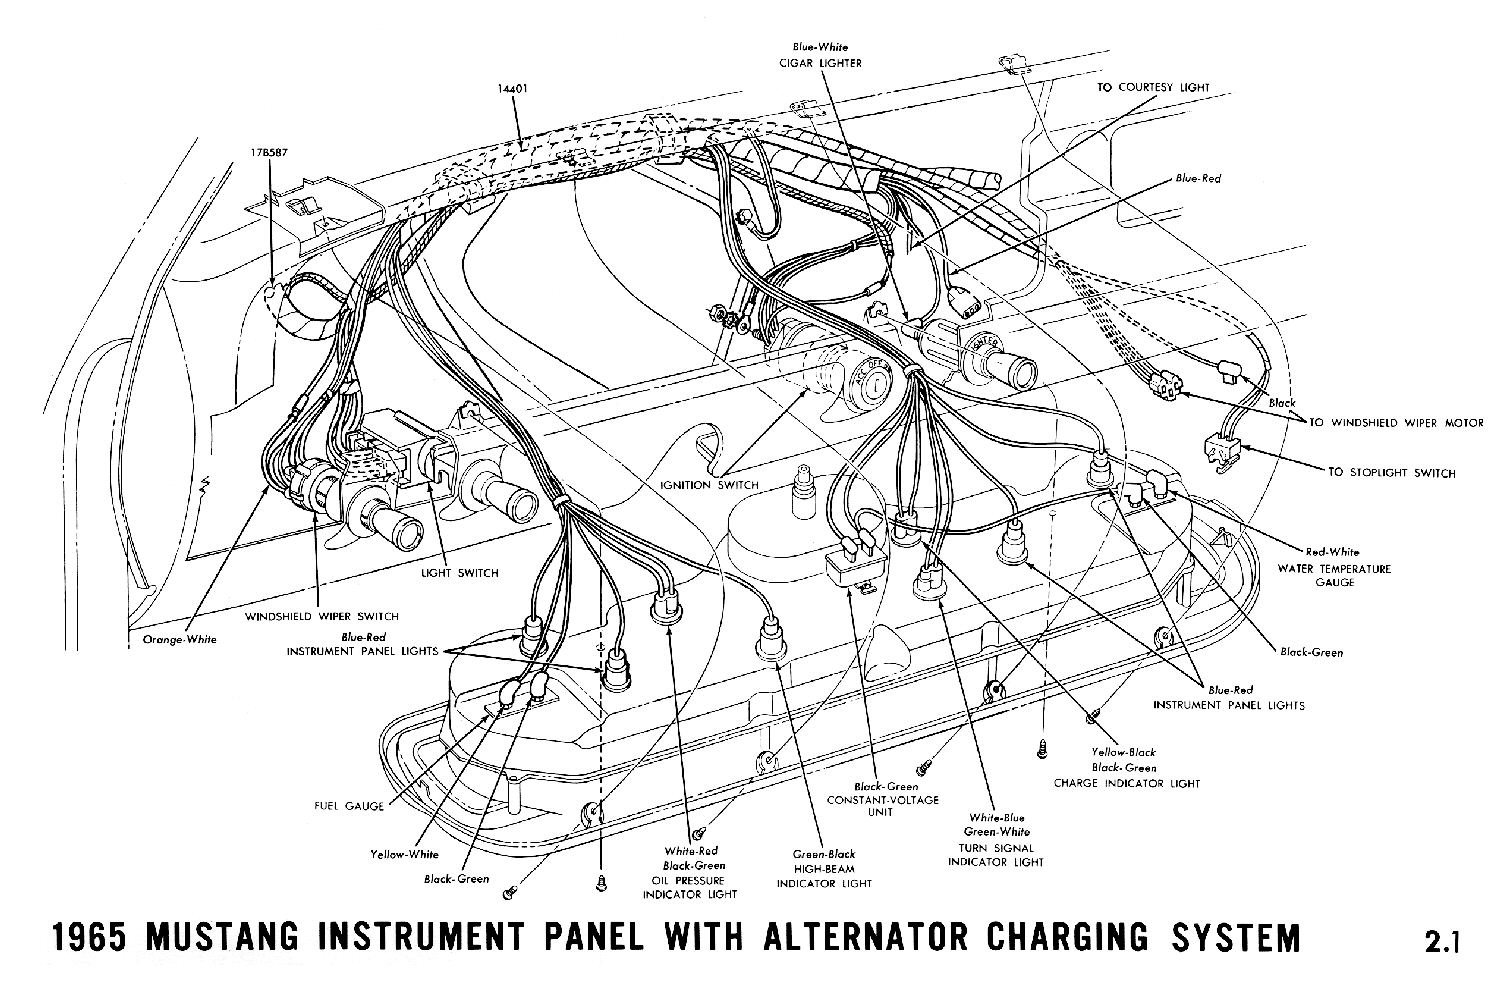 fuse block on a 1965 mustang coupe - ford mustang forum wiring diagram for dash gauges 69 w30 wiring diagram for mercury outboard gauges #15